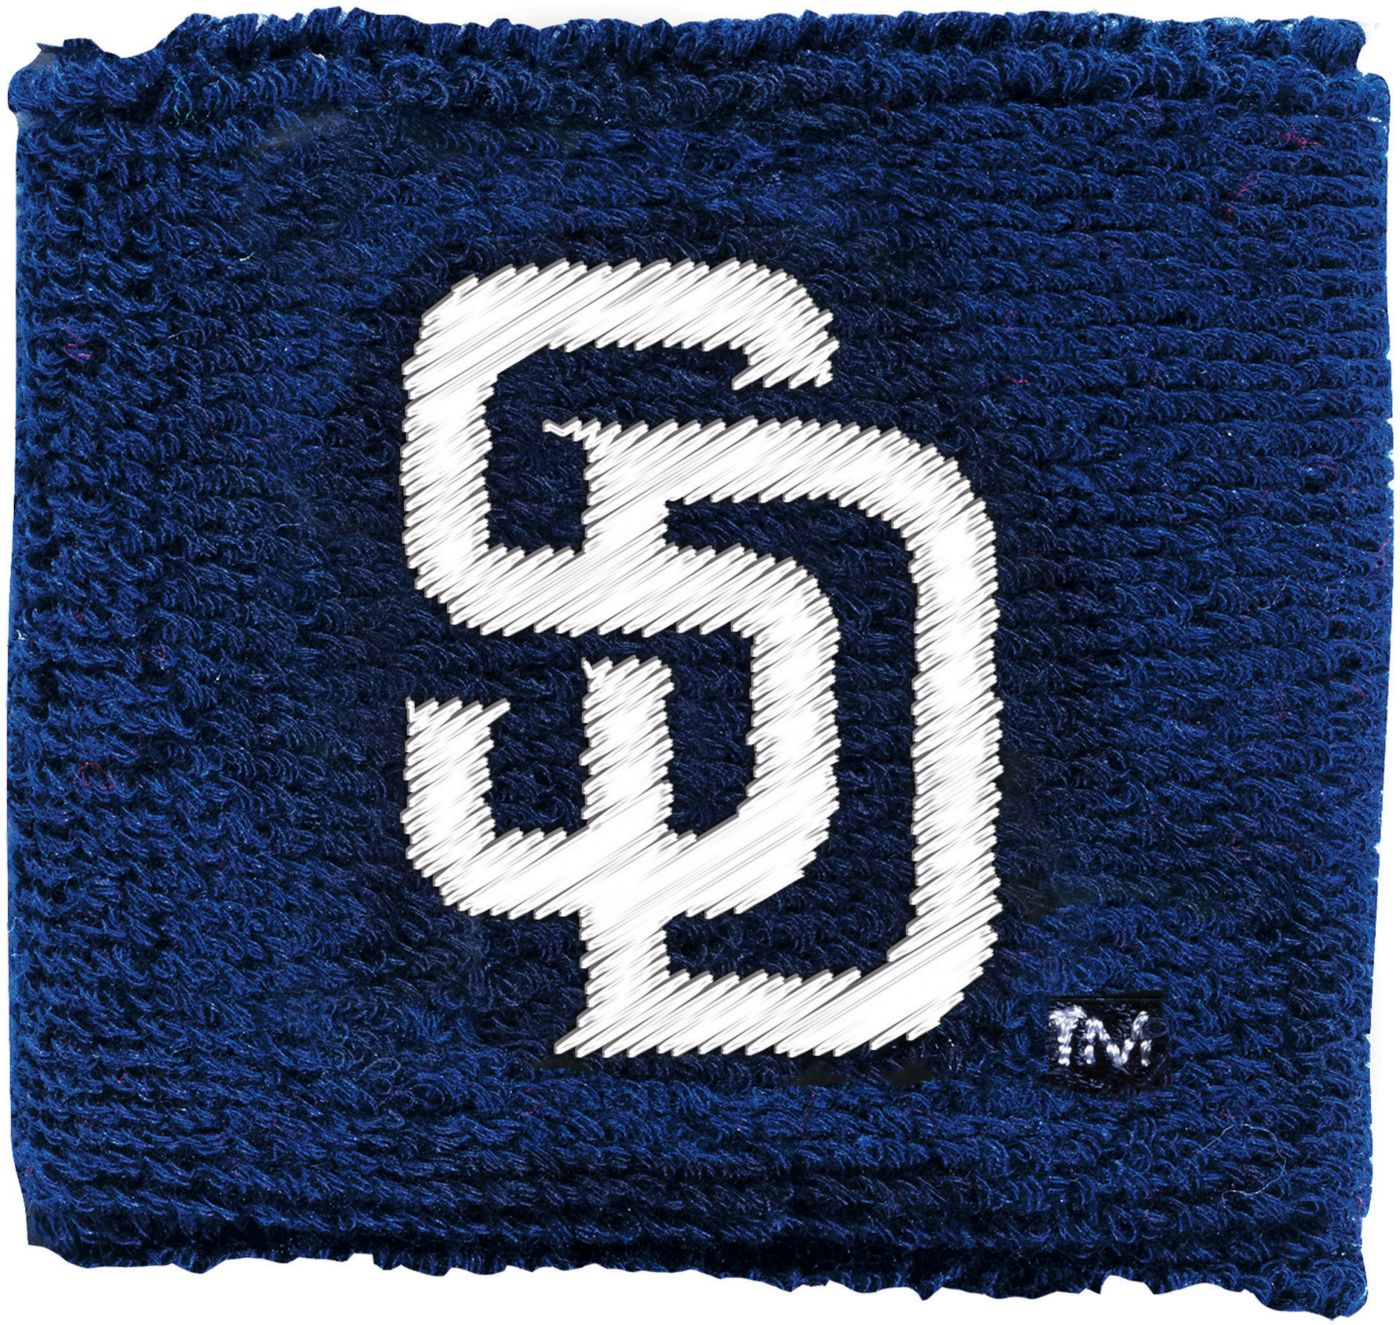 Franklin San Diego Padres Embroidered Wristbands